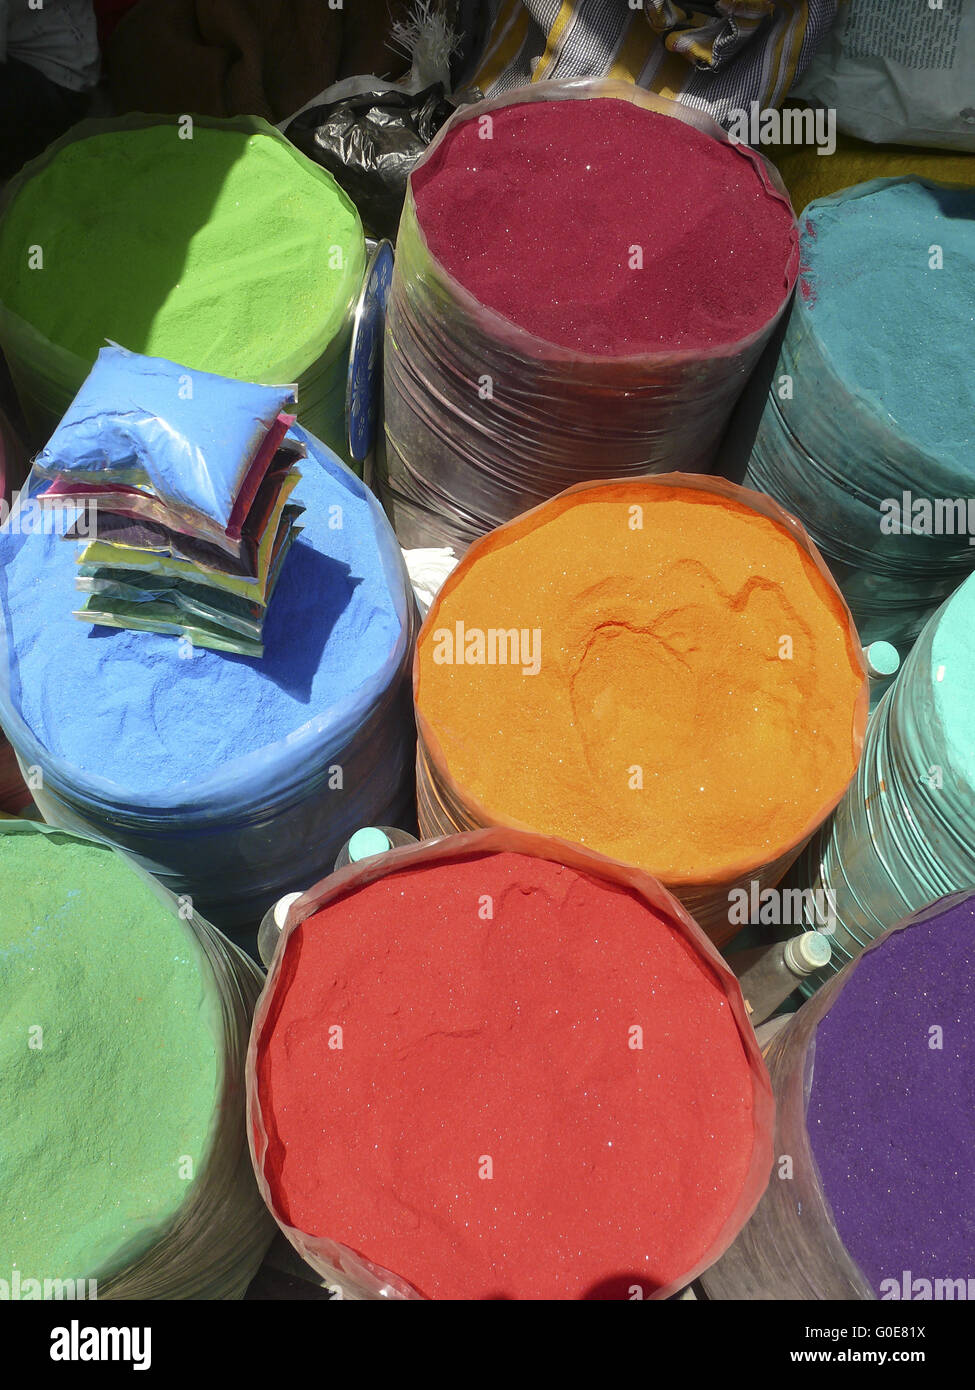 Colorful Rangoli for sell at marketplace, India - Stock Image